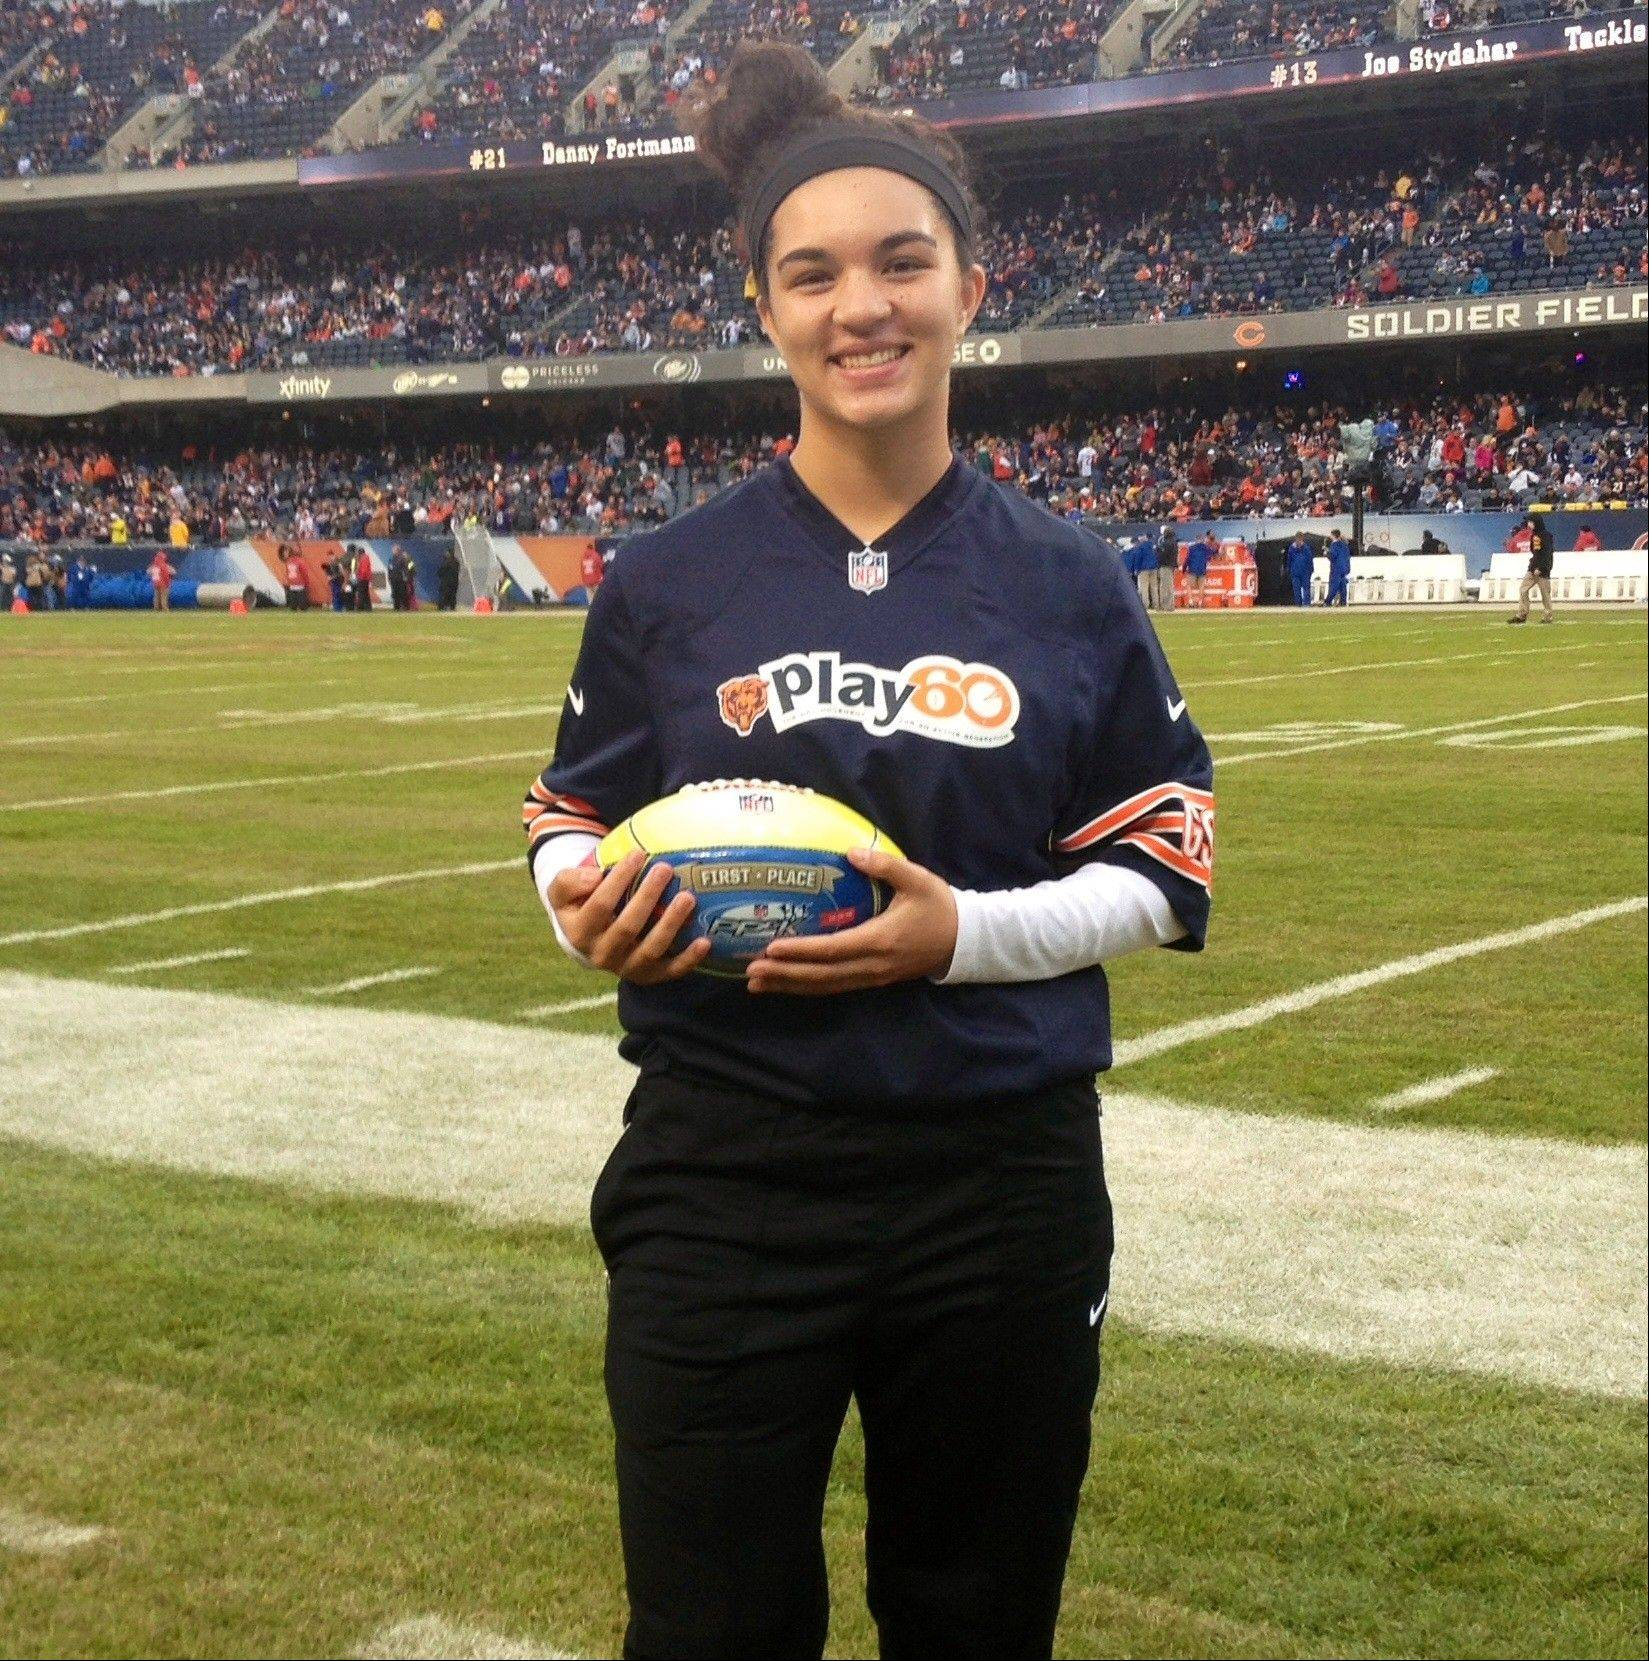 Weeks of preparation paid off this weekend for Alisa Fallon of Des Plaines, who won her age group in the NFL�s Punt, Pass and Kick contest in Denver. Alisa, shown here at Soldier Field, was honored Sunday before a national television audience during the Denver Broncos playoff game.